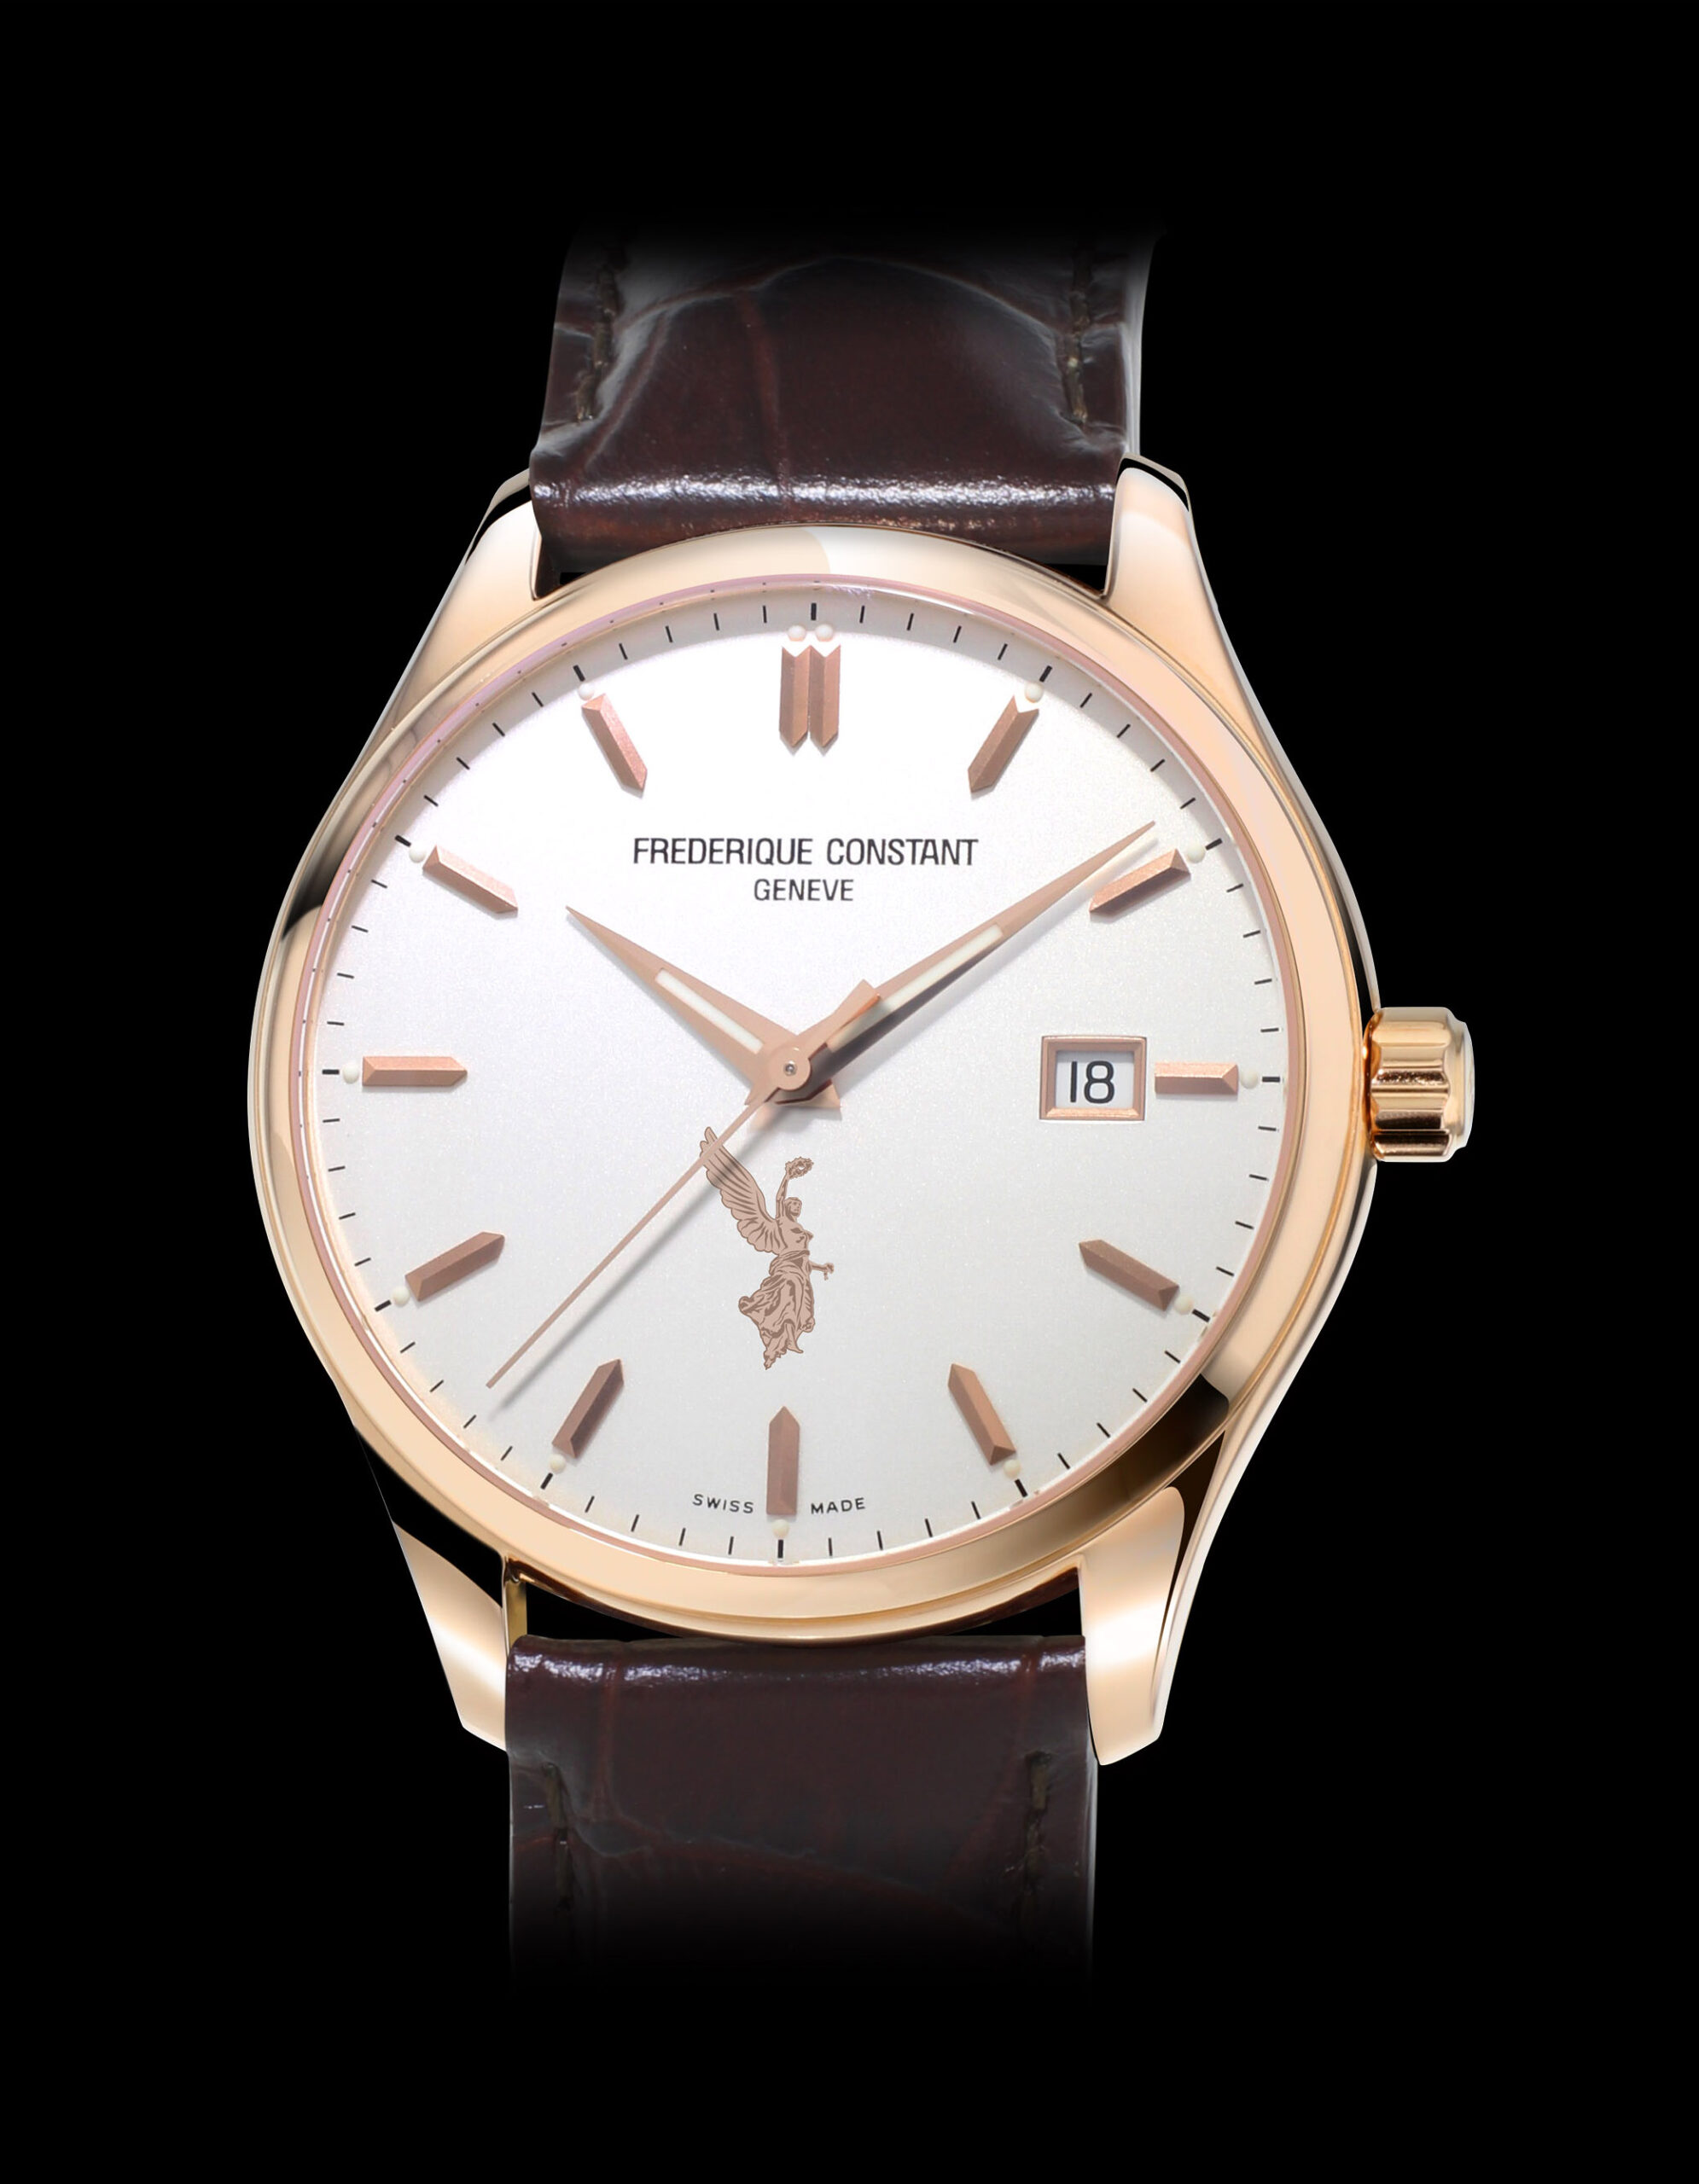 Frederique Constant Limited Edition Angel Independencia-2020-frente